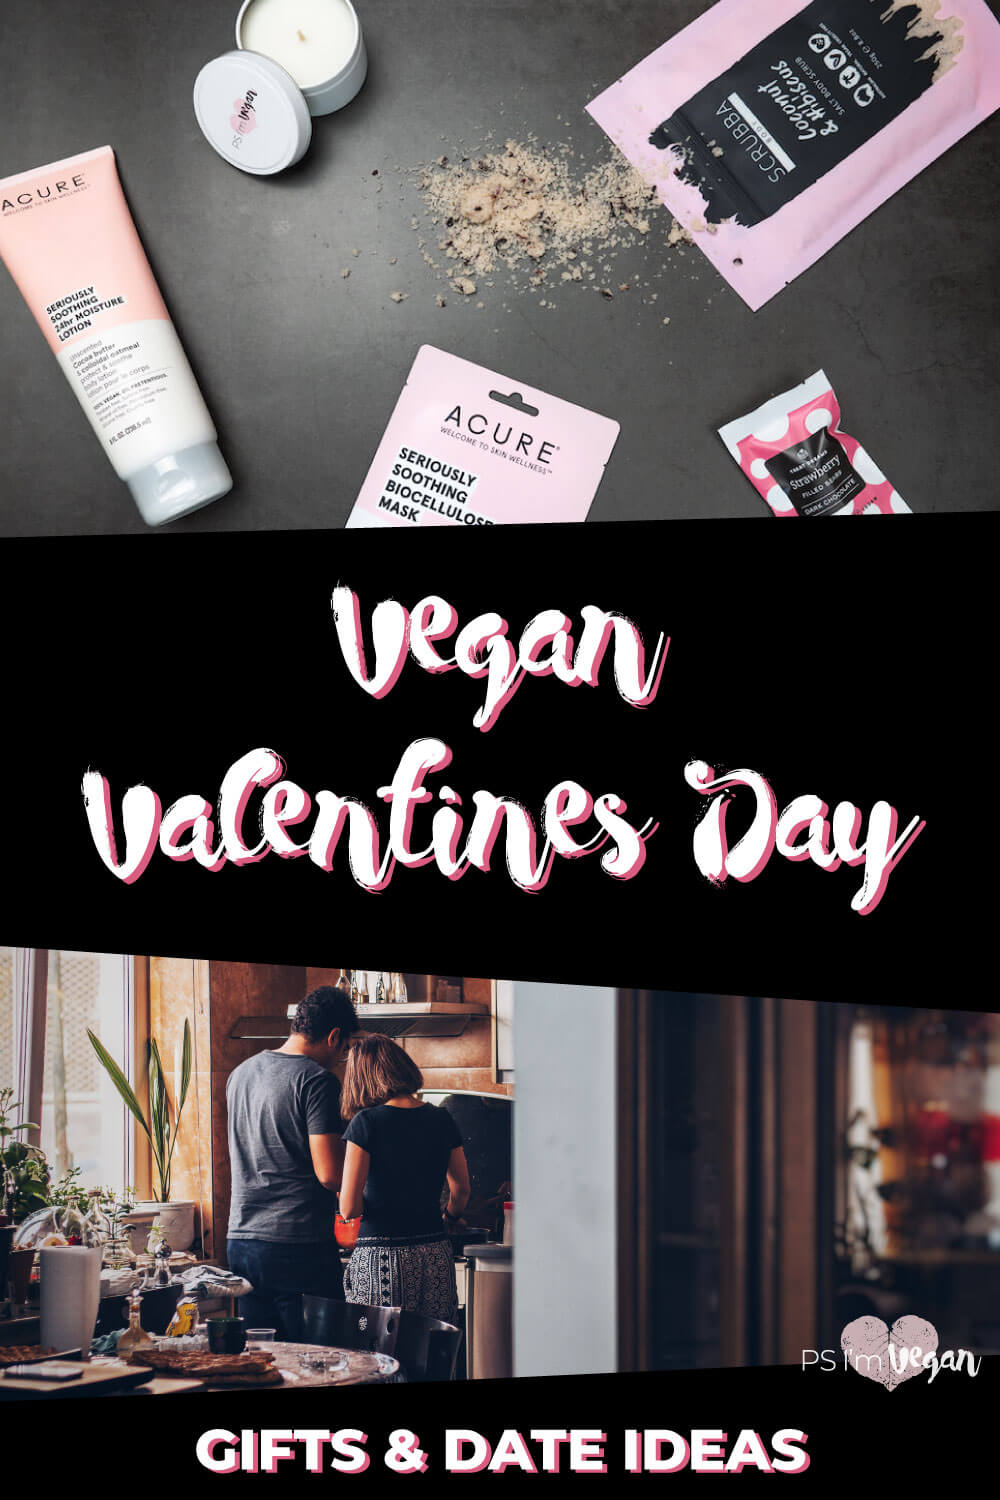 Need vegan Valentine's Day gifts and romantic date ideas for that special someone? We've got you covered with our huge guide including vegan Valentine's day recipes for desserts, heart-shaped cookies, romantic mains and entrees, a vegan charcuterie board to take on a picnic, and more. Plus the best vegan gifts to buy, vegan chocolates, cheese and champagne and how to find vegan restaurants near you! 💝🌱🍫 #vegan #valentinesday #romantic #PSIV #vegangifts #shop